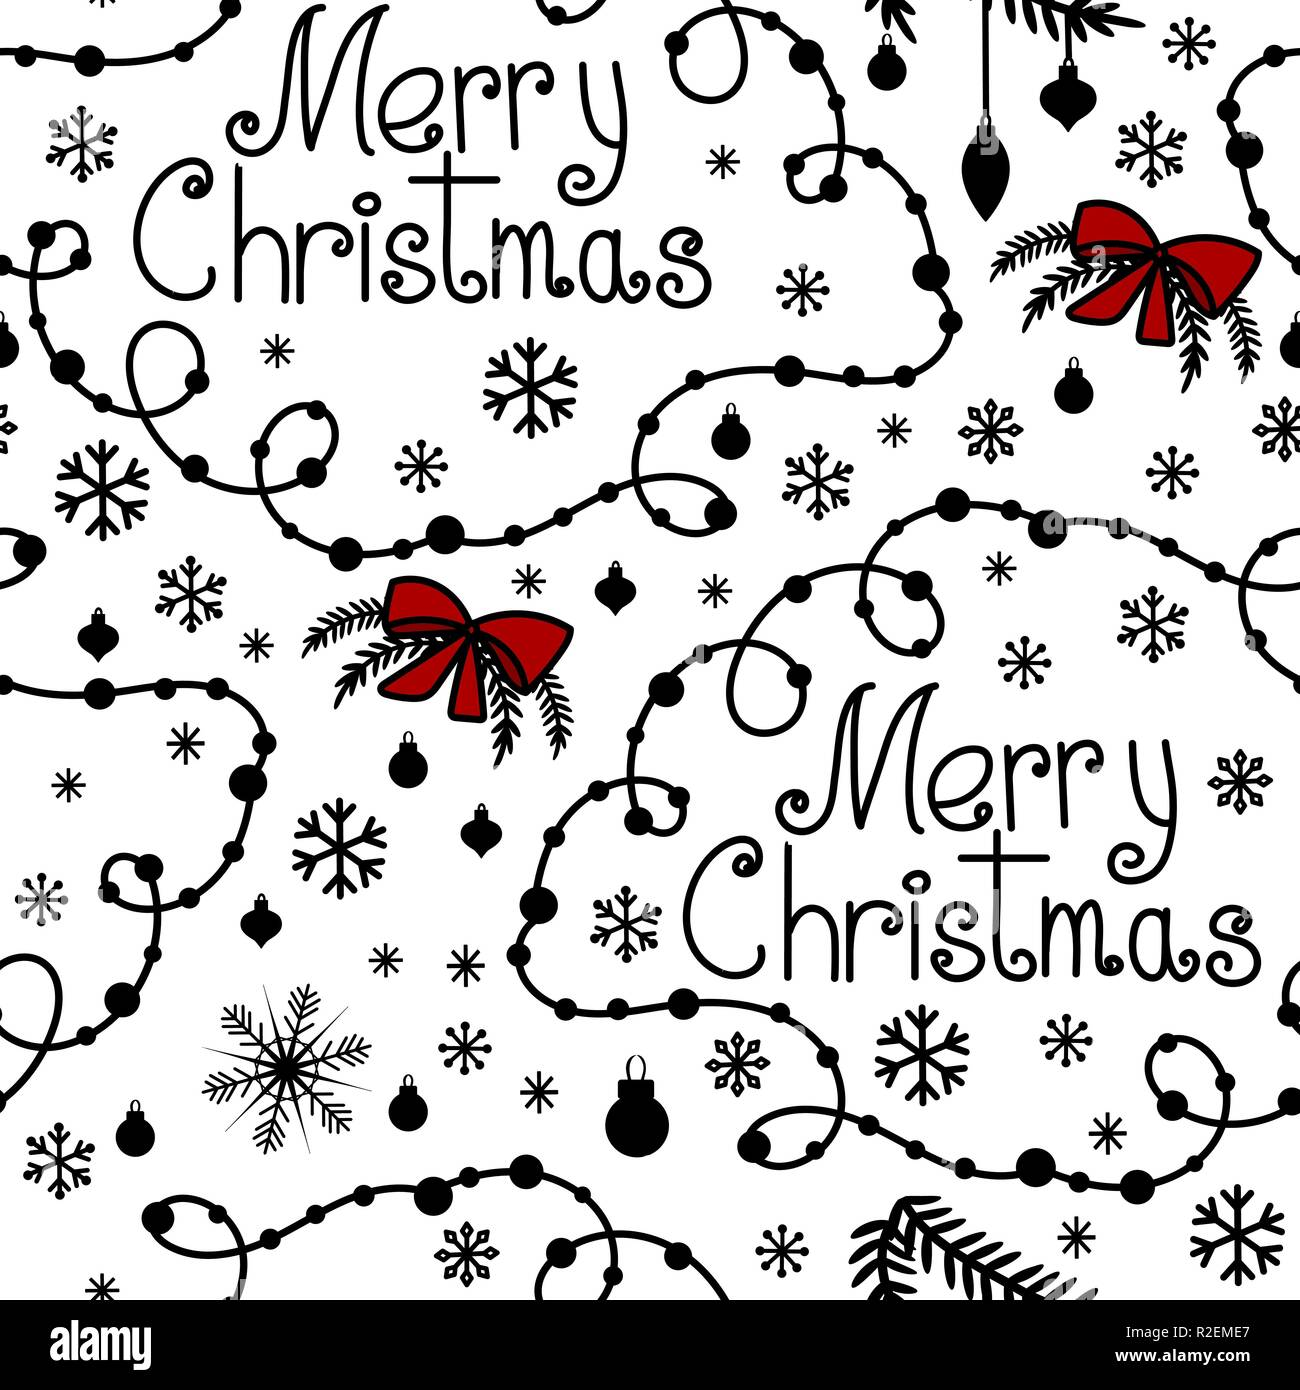 merry christmas background with hand drawn text  swirls and snowflakes  hand drawn doodle style